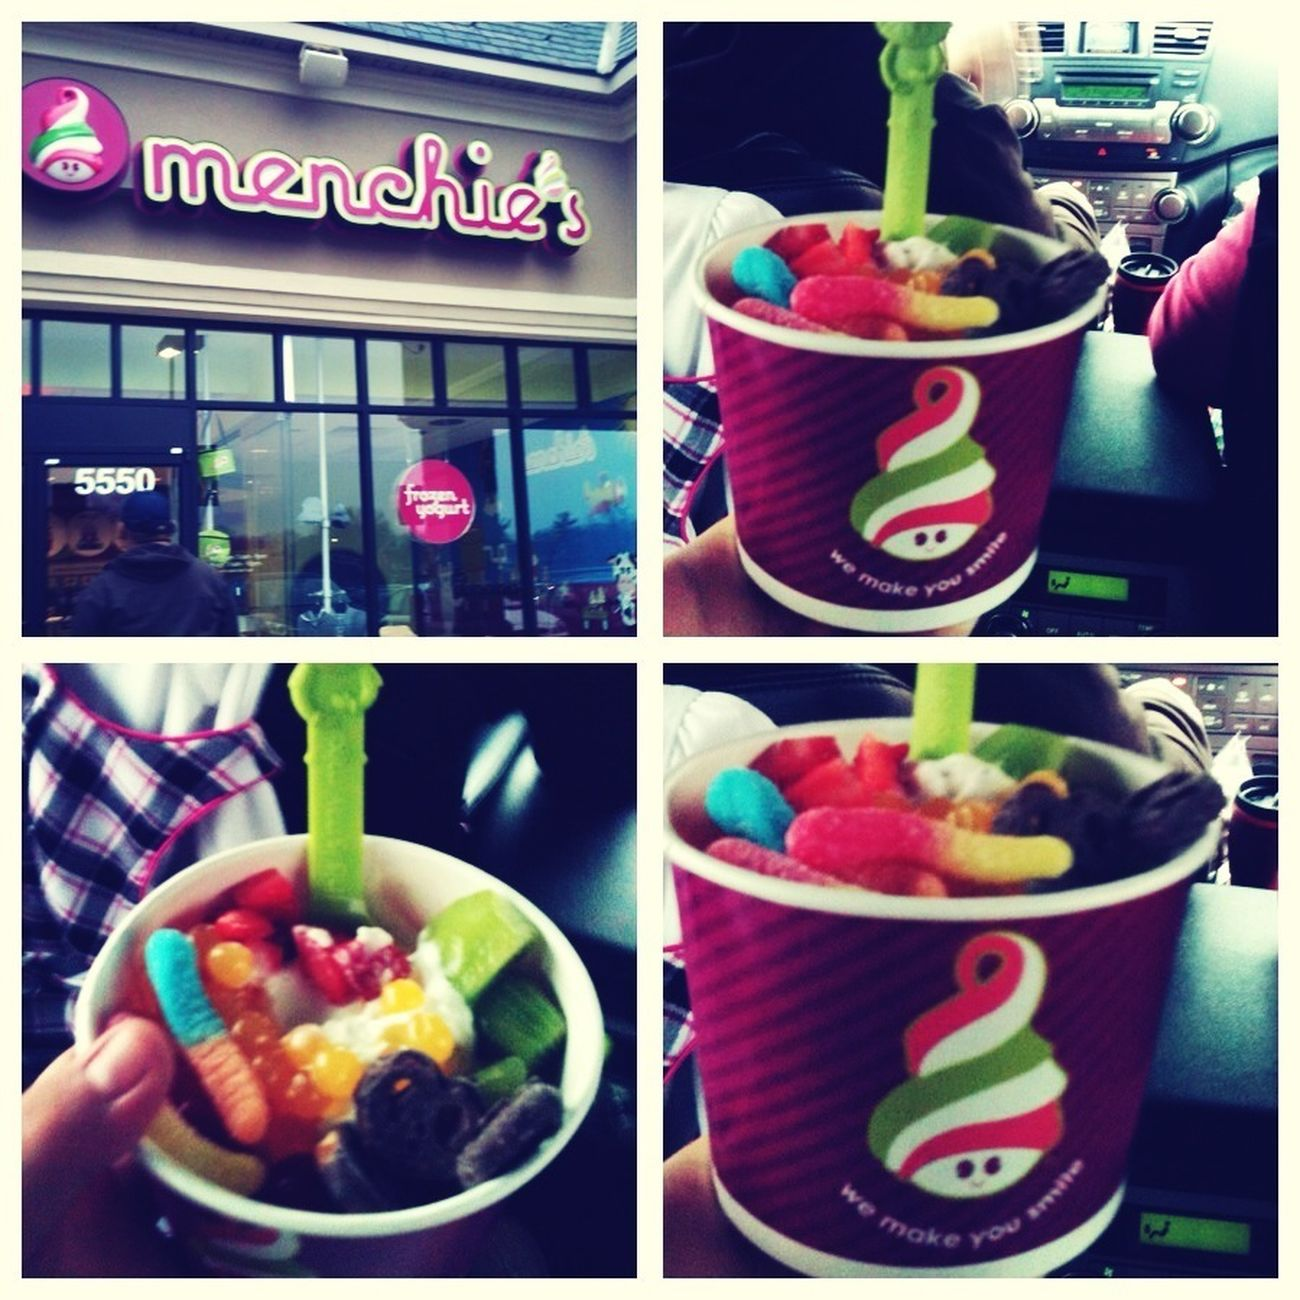 Finally Got Menchies